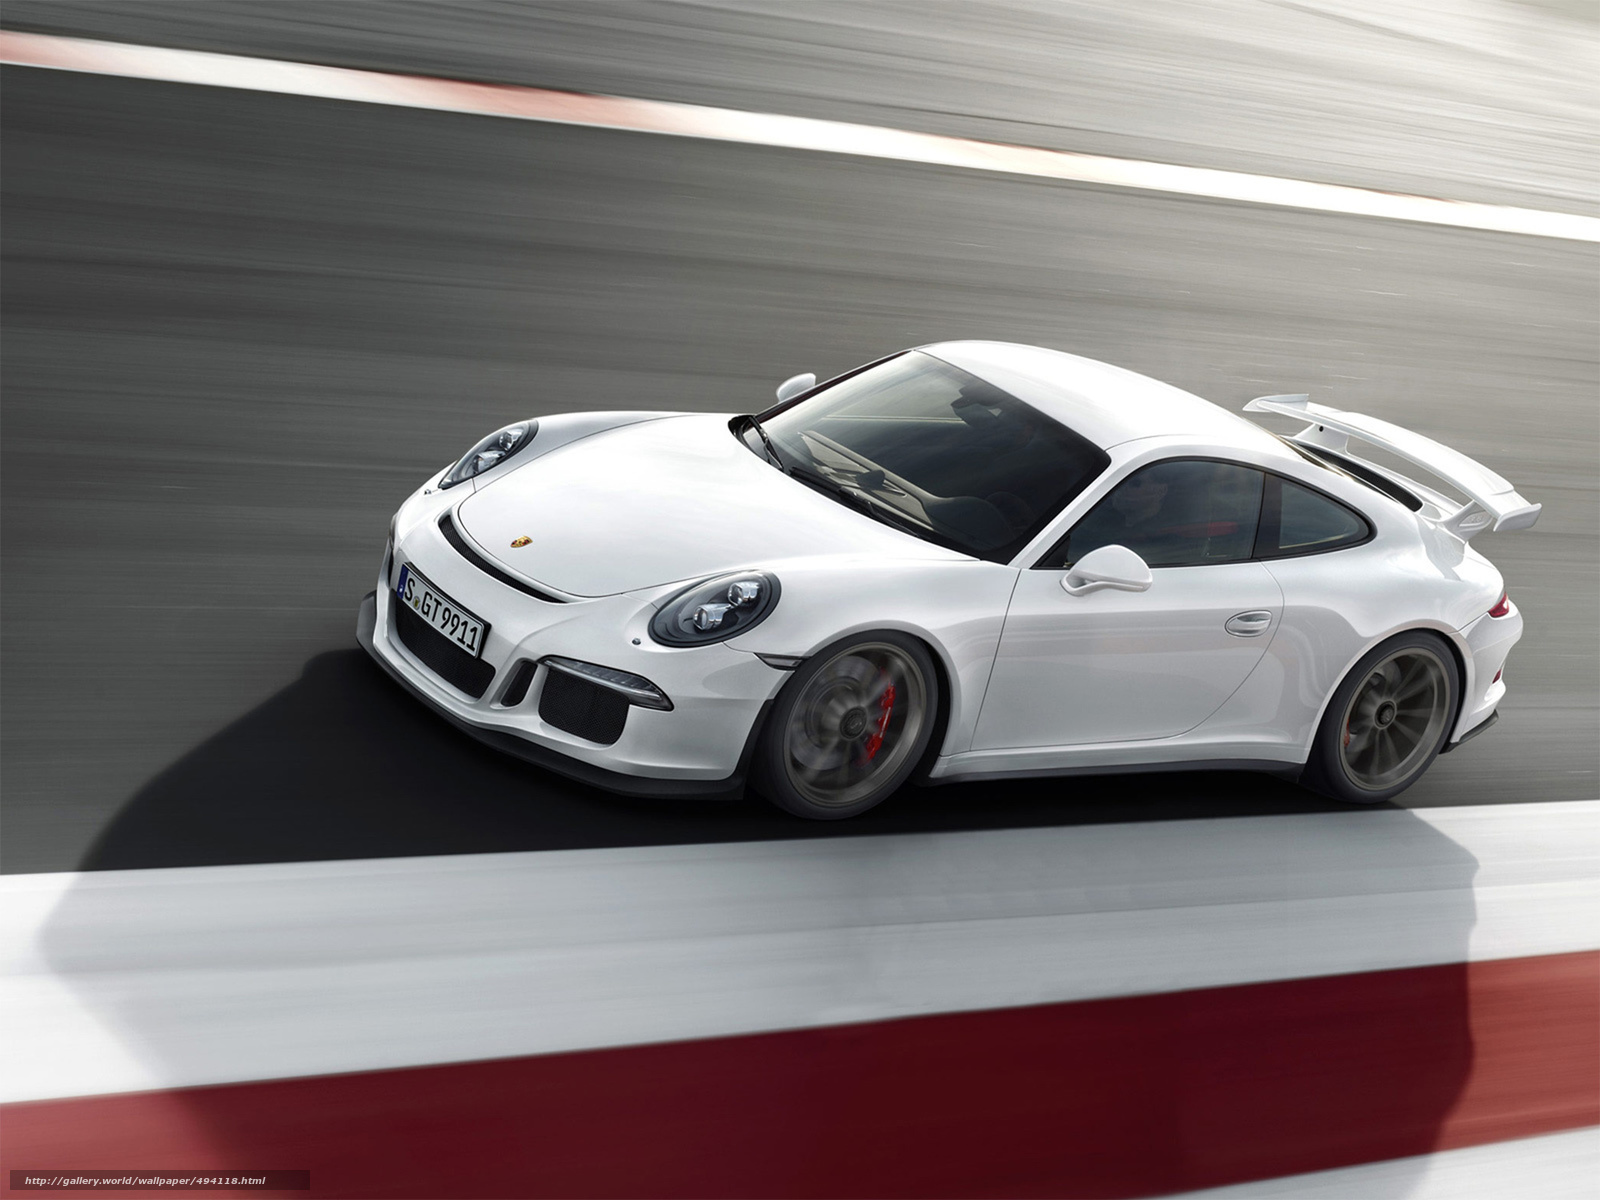 Download wallpaper porsche 911 gt3 car machine cars free desktop wallpaper in the resolution 2000x1500 picture 494118